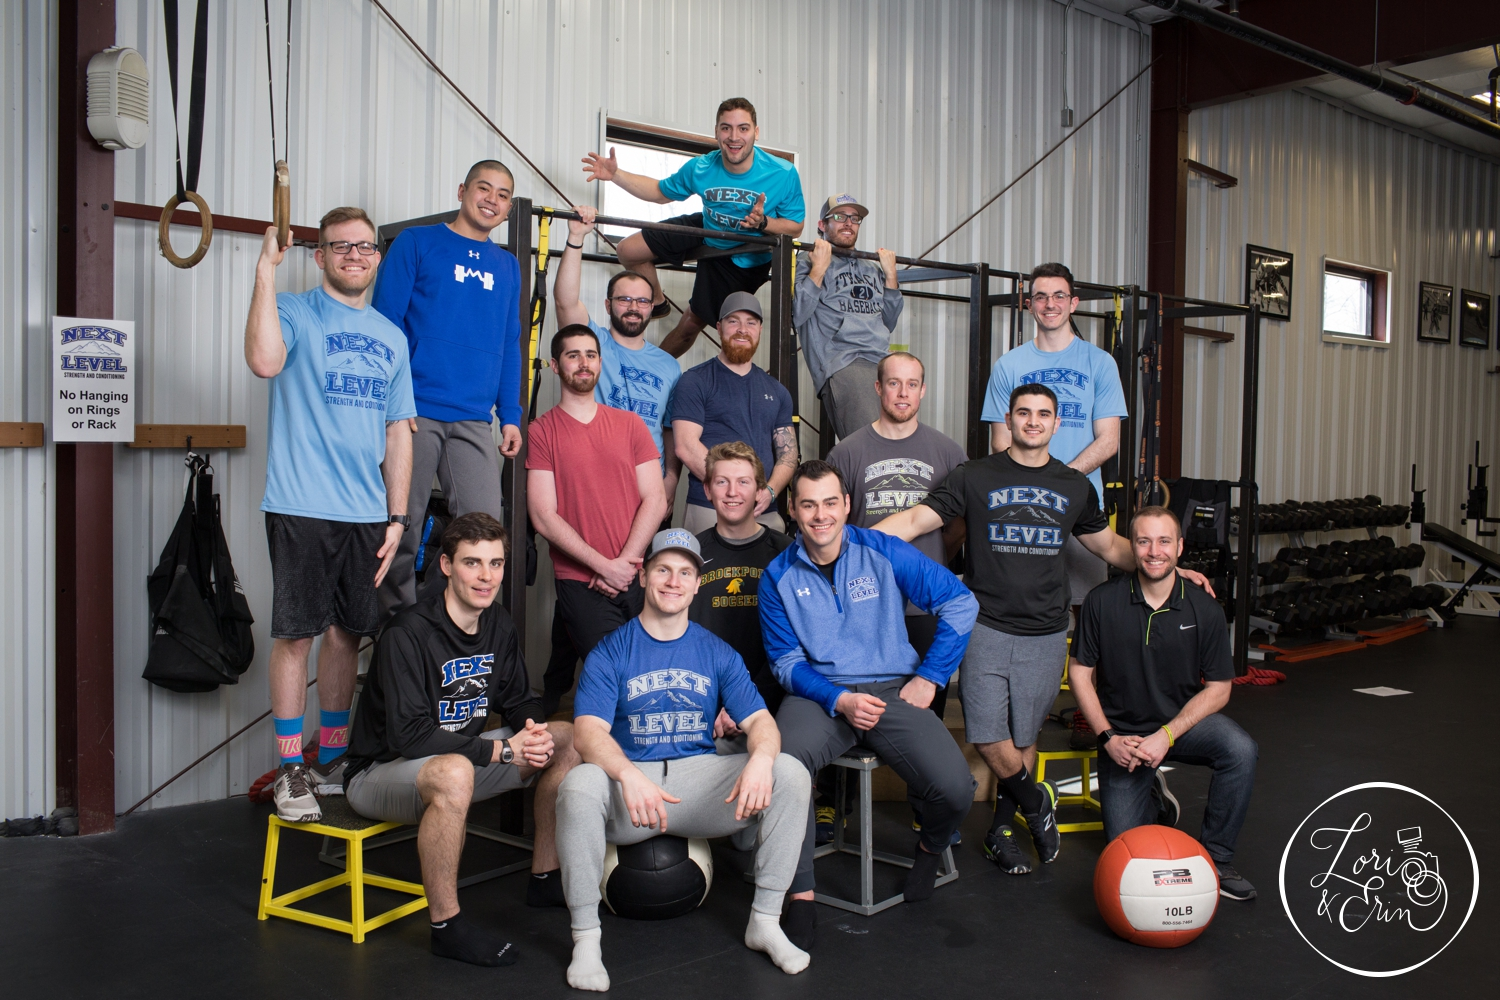 The team at Next Level Strength and Conditioning